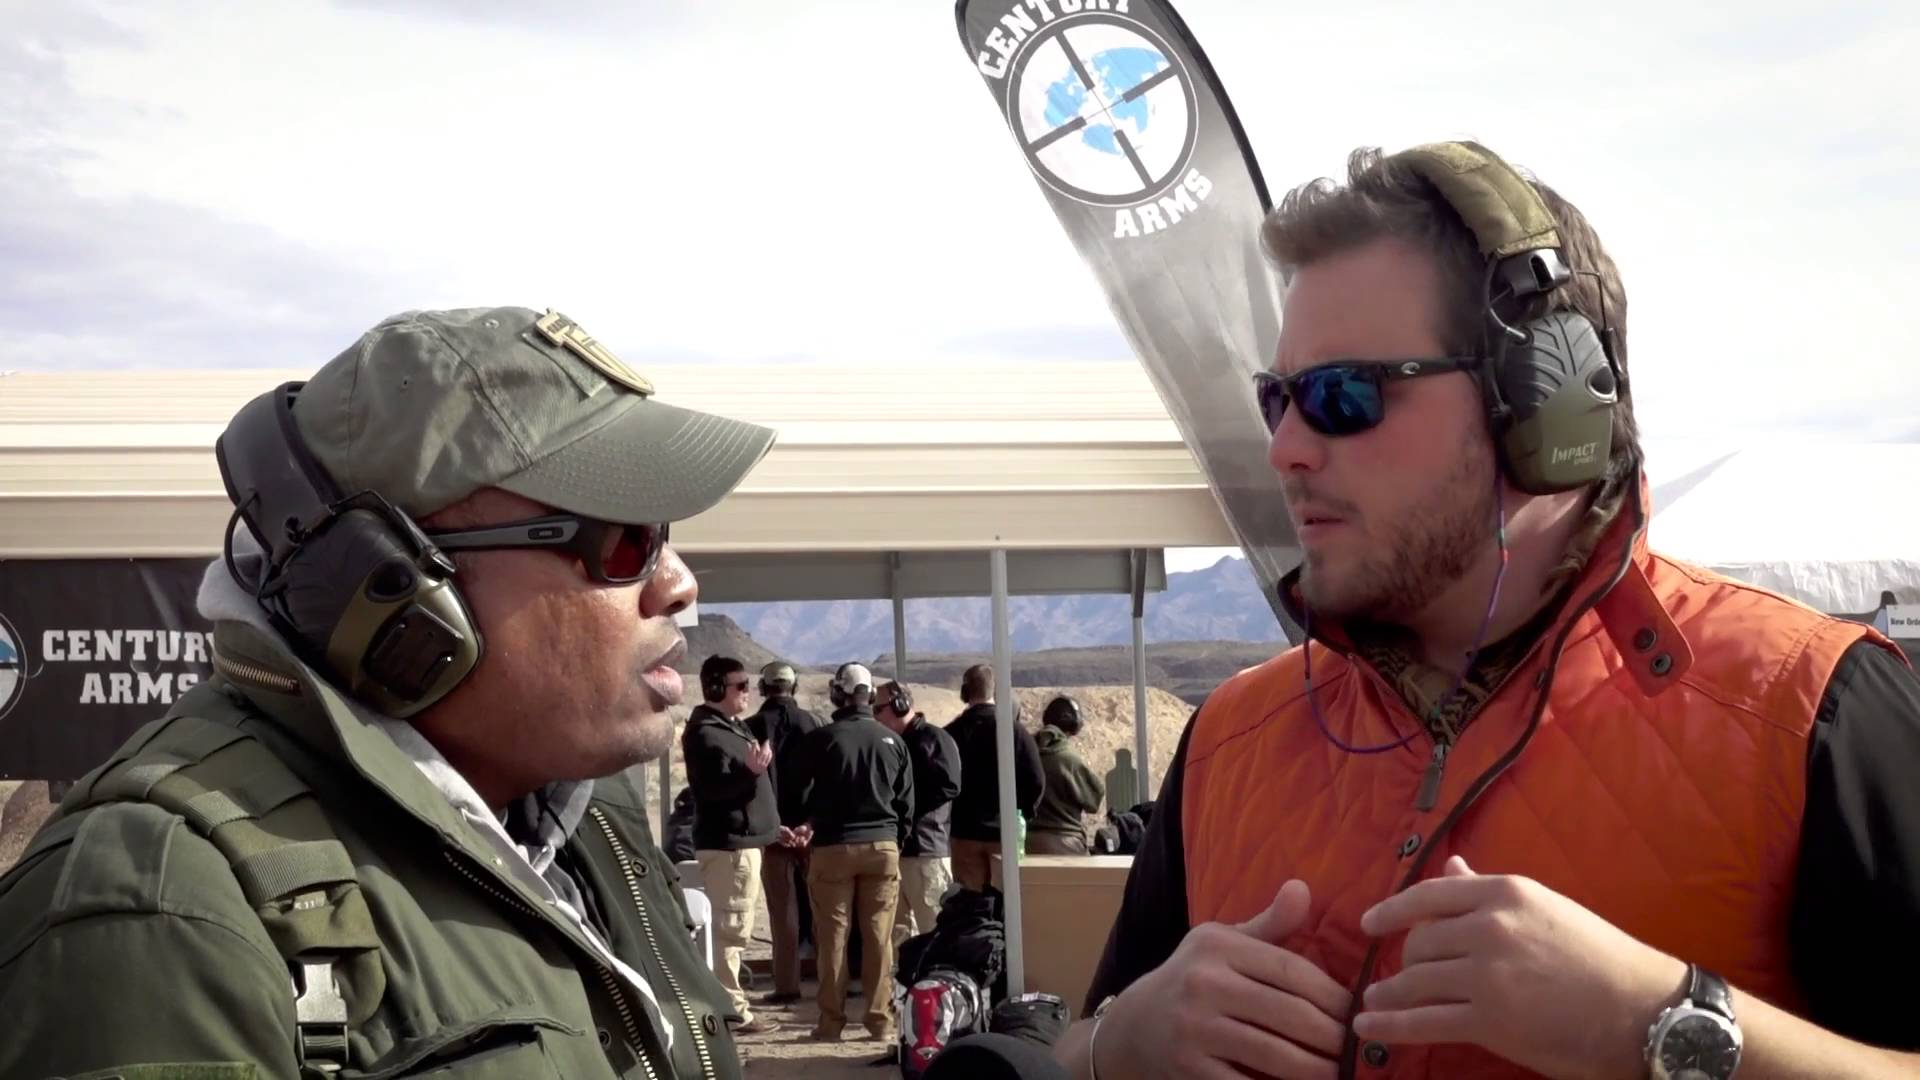 Century Arms SBR AK's SHOT Show 2016 Media Day GunsAmerica